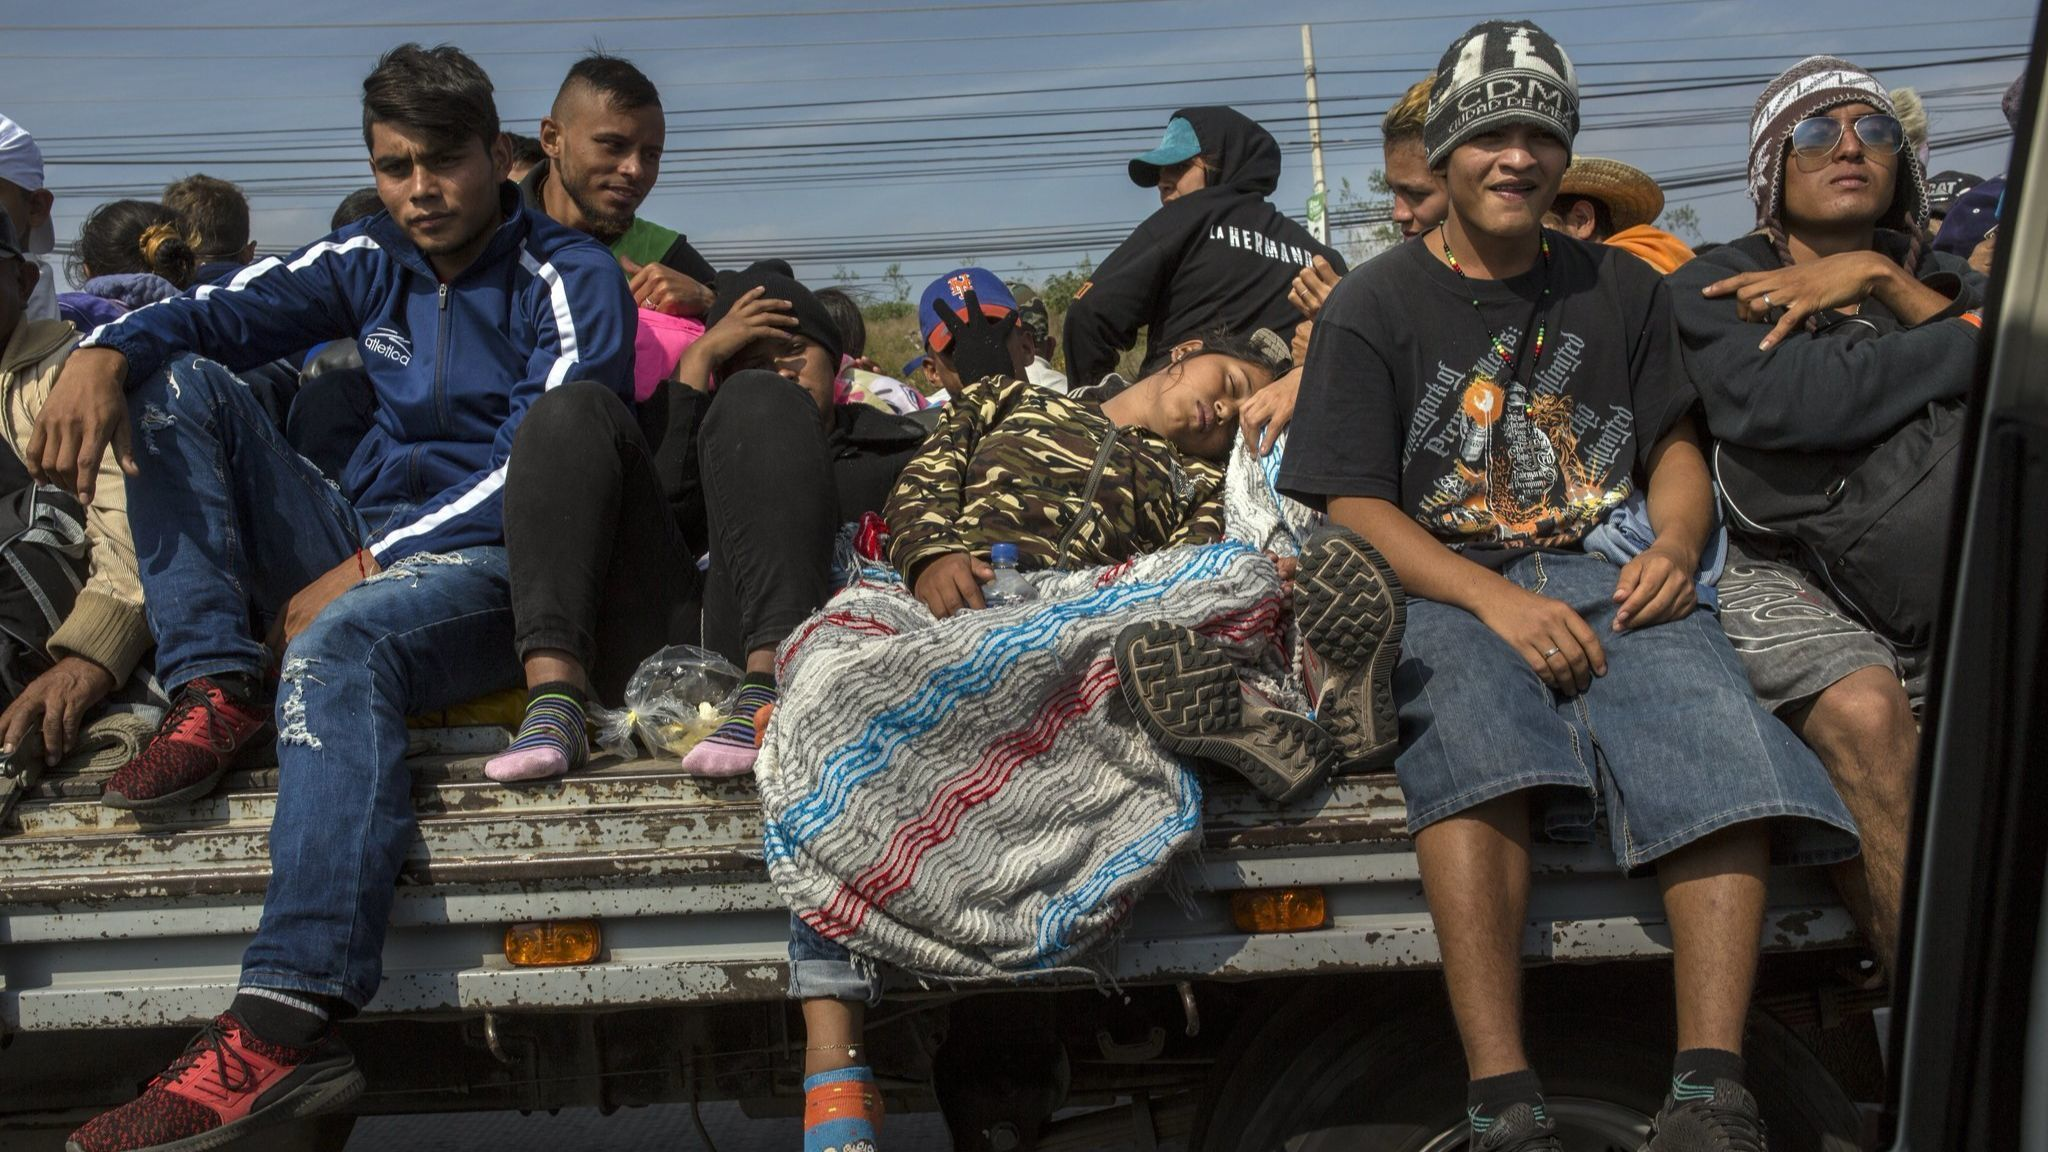 Caravans are 'tip of the iceberg' of a larger and deeply entrenched phenomenon